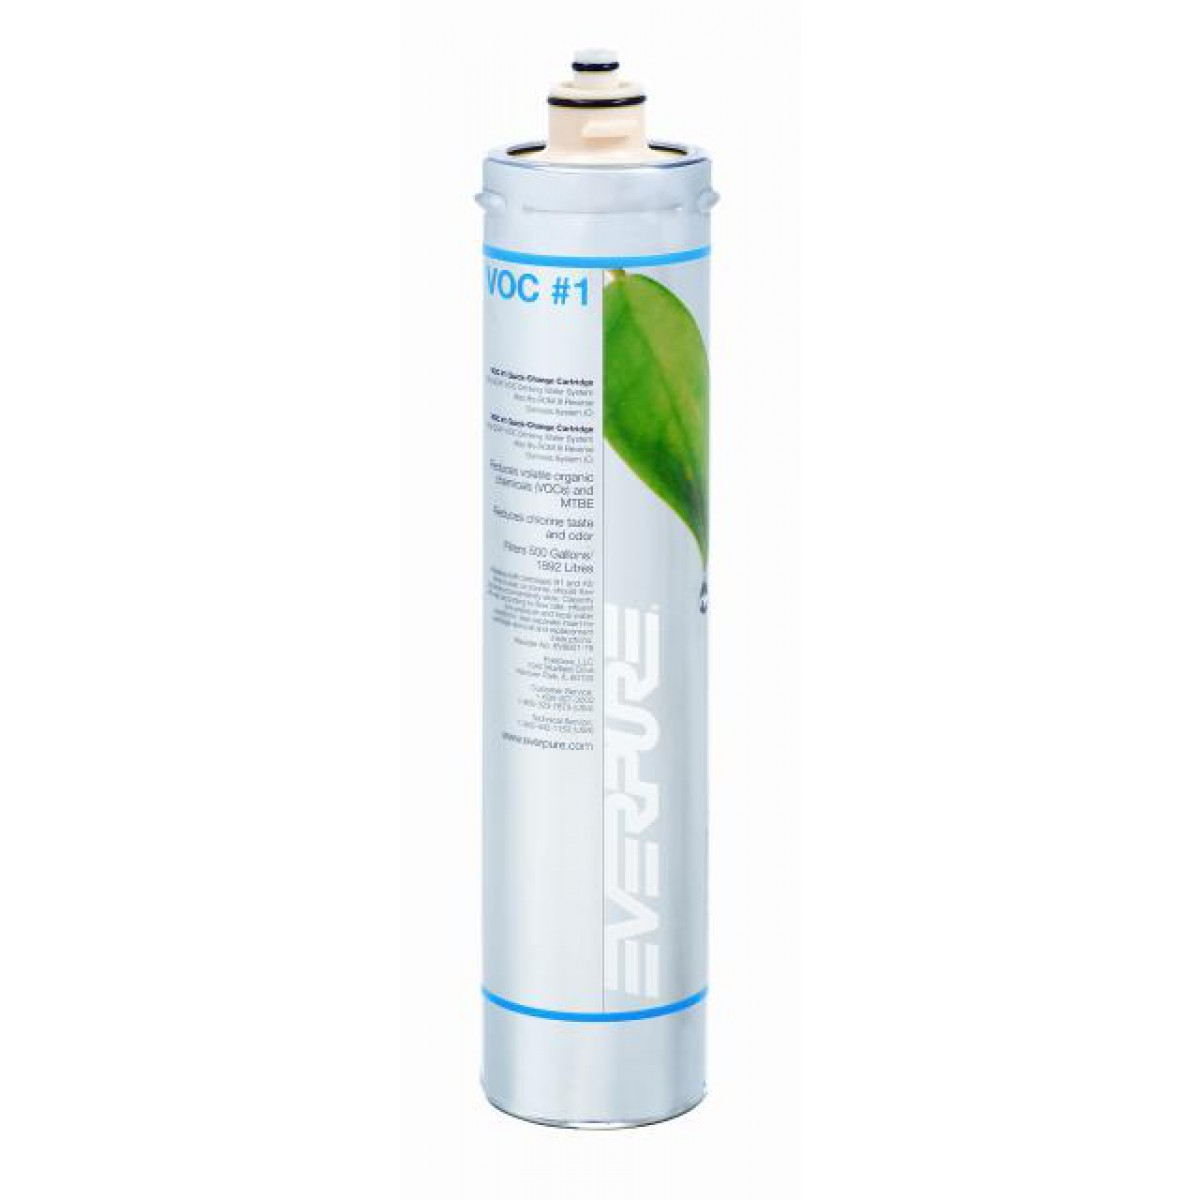 Everpure voc 1 water filter cartridge 9601 76 for Everpure water filter review